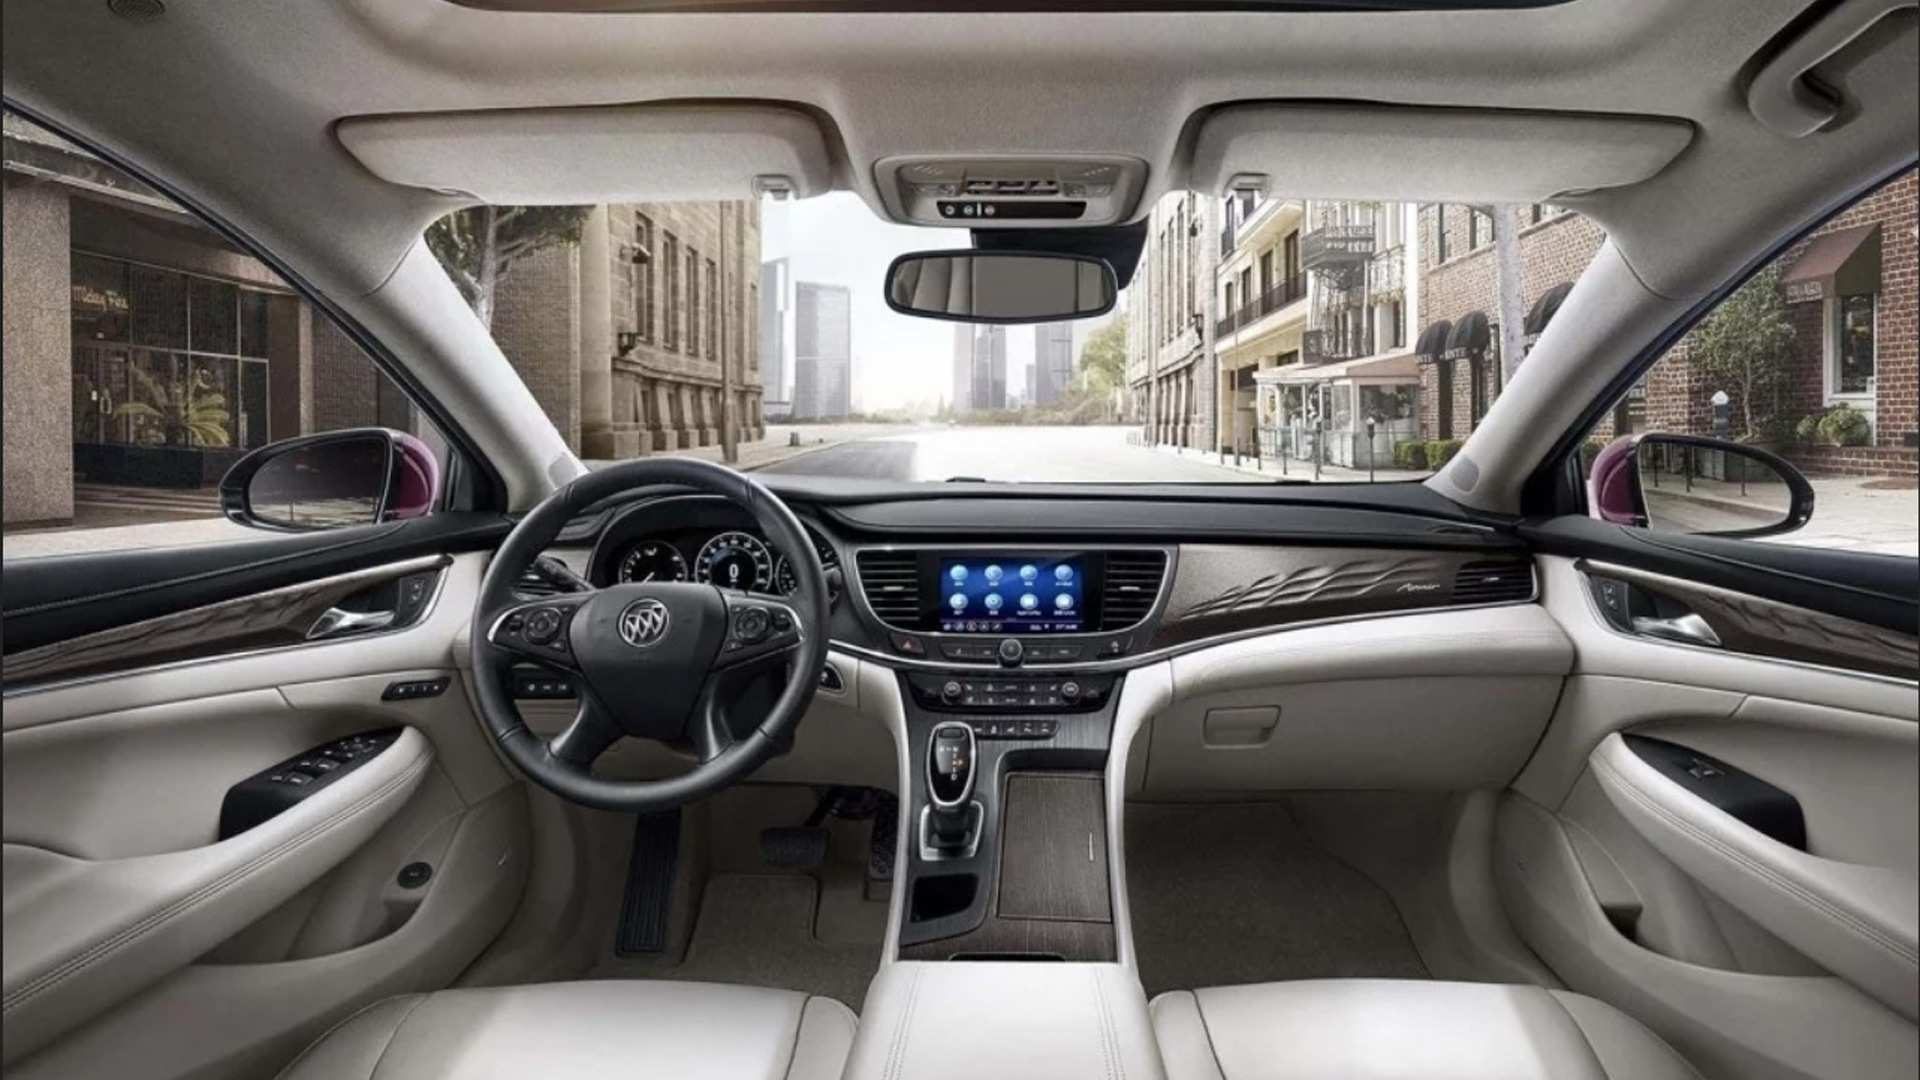 55 The 2020 Buick LaCrosses Review